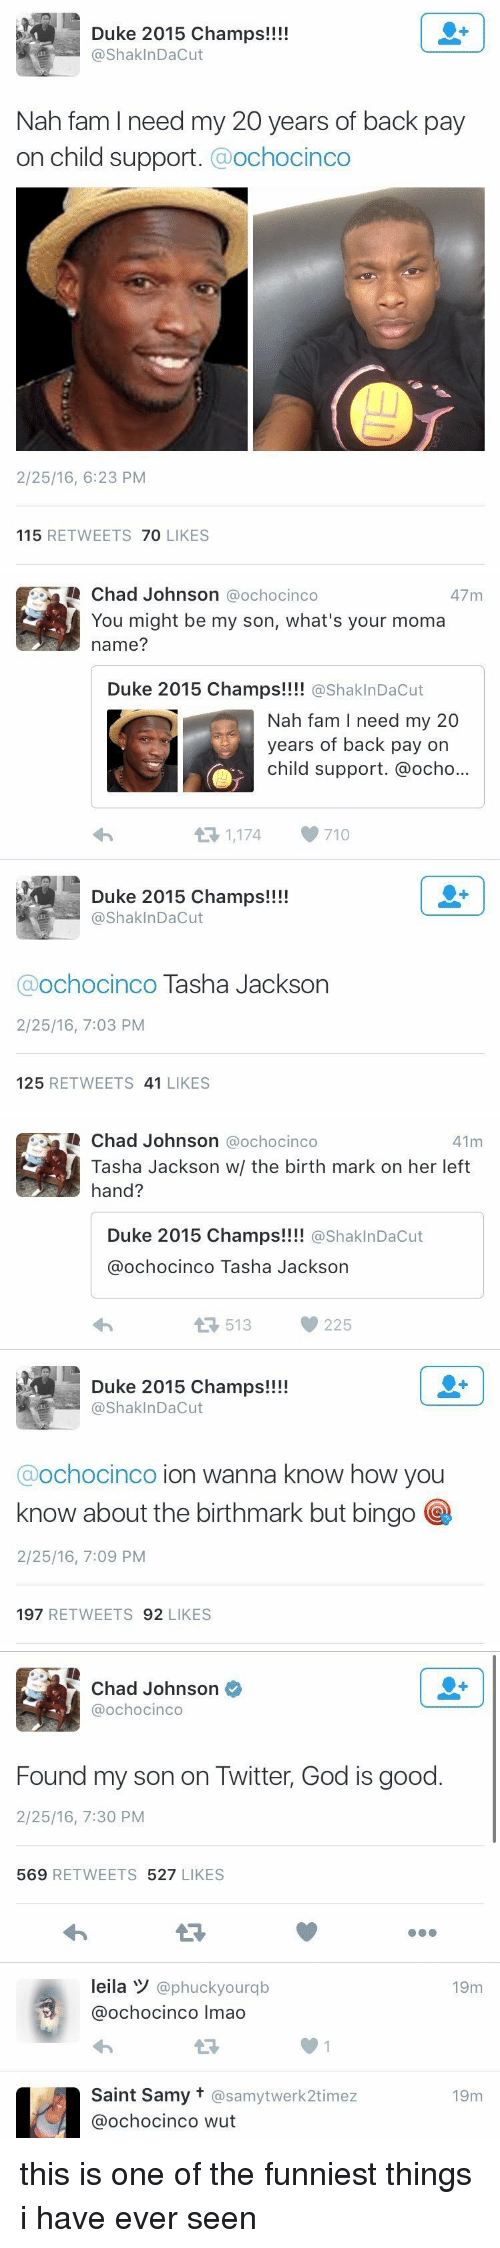 Blackpeopletwitter, Child Support, and Fam: Duke 2015 champs!!!!  ShaklnDacut  Nah fam l need my 20 years of back pay  on child support  Ochocinco  2/25/16, 6:23 PM  115  RETWEETS  70  LIKES   Chad Johnson  a ochocinco  47 m  You might be my son, what's your moma  name?  Duke 2015 Champs!!!!  @Shakl nDacut  Nah fam I need my 20  years of back pay on  child support. @ocho...  1,174, 710  t Duke 2015 Champs!!!!  Shak InDacut  Ochocinco  Tasha Jackson  2/25/16, 7:03 PM  125  RETWEETS 41  LIKES   Chad Johnson  ochocinco  41m  Tasha Jackson w/ the birth mark on her left  hand?  Duke 2015 Champs!!!!  ashakInDacut  ochocinco Tasha Jackson  513  225  Duke 2015 Champs!!!!  Shak InDacut  Ochocinco  ion wanna know how you  know about the birthmark but bingo  2/25/16, 7:09 PM  197  RETWEETS  92  LIKES   Chad Johnson  @ochocinco  Found my son on Twitter, God is good  2/25/16, 7:30 PM  569  RETWEETS  527  LIKES  leila W  @phuckyourqb  19m  ochocinco lmao  Saint Samy t @samytwerk2timez  19m  Ca ochocinco wut this is one of the funniest things i have ever seen